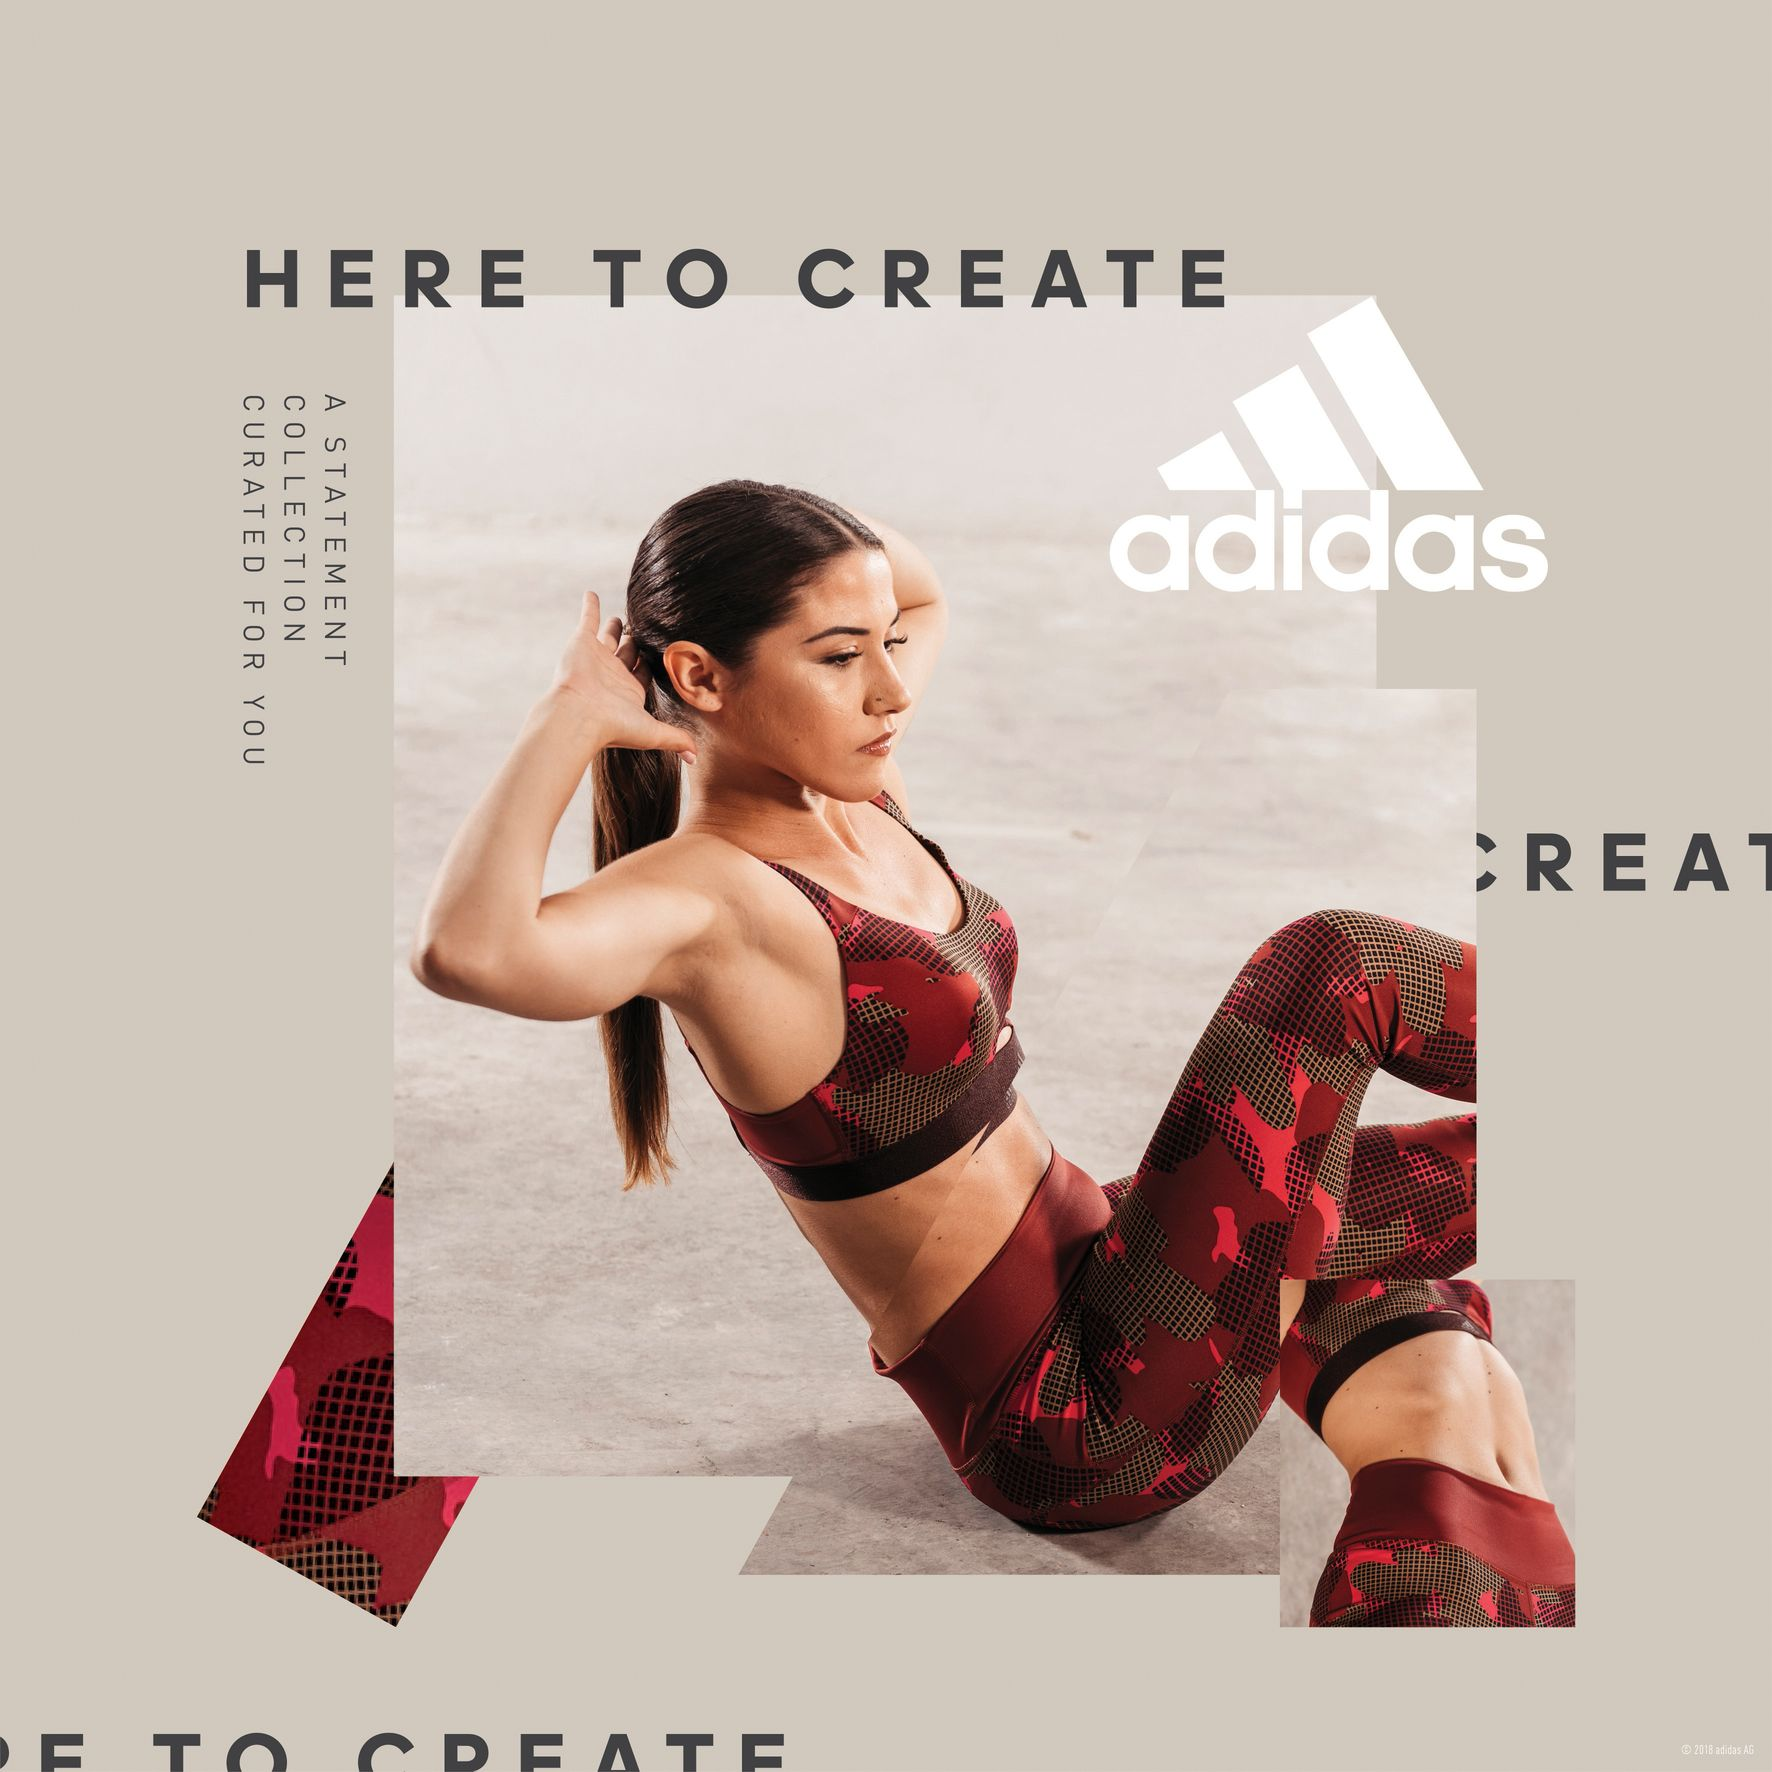 Adidas Women Statement Collection - Sofia Karioti